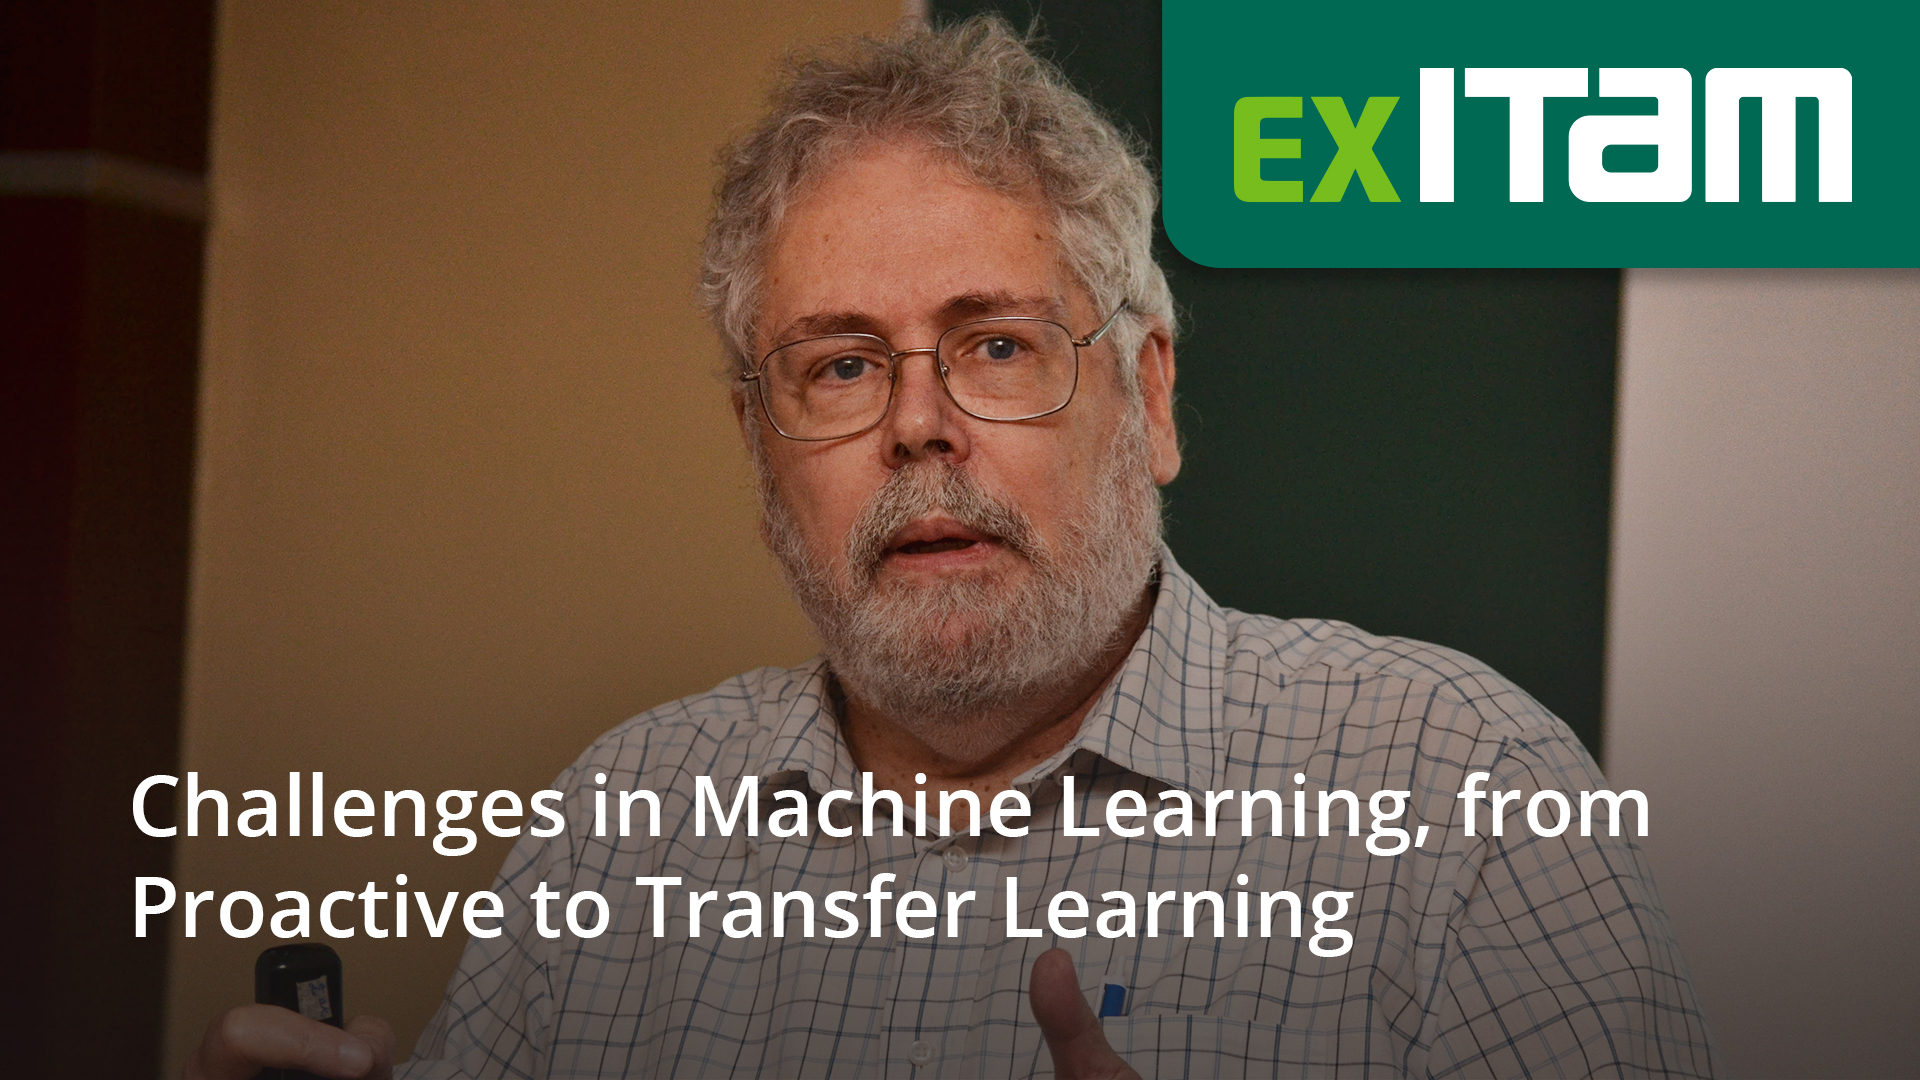 Challenges in Machine Learning, from Proactive to Transfer Learning